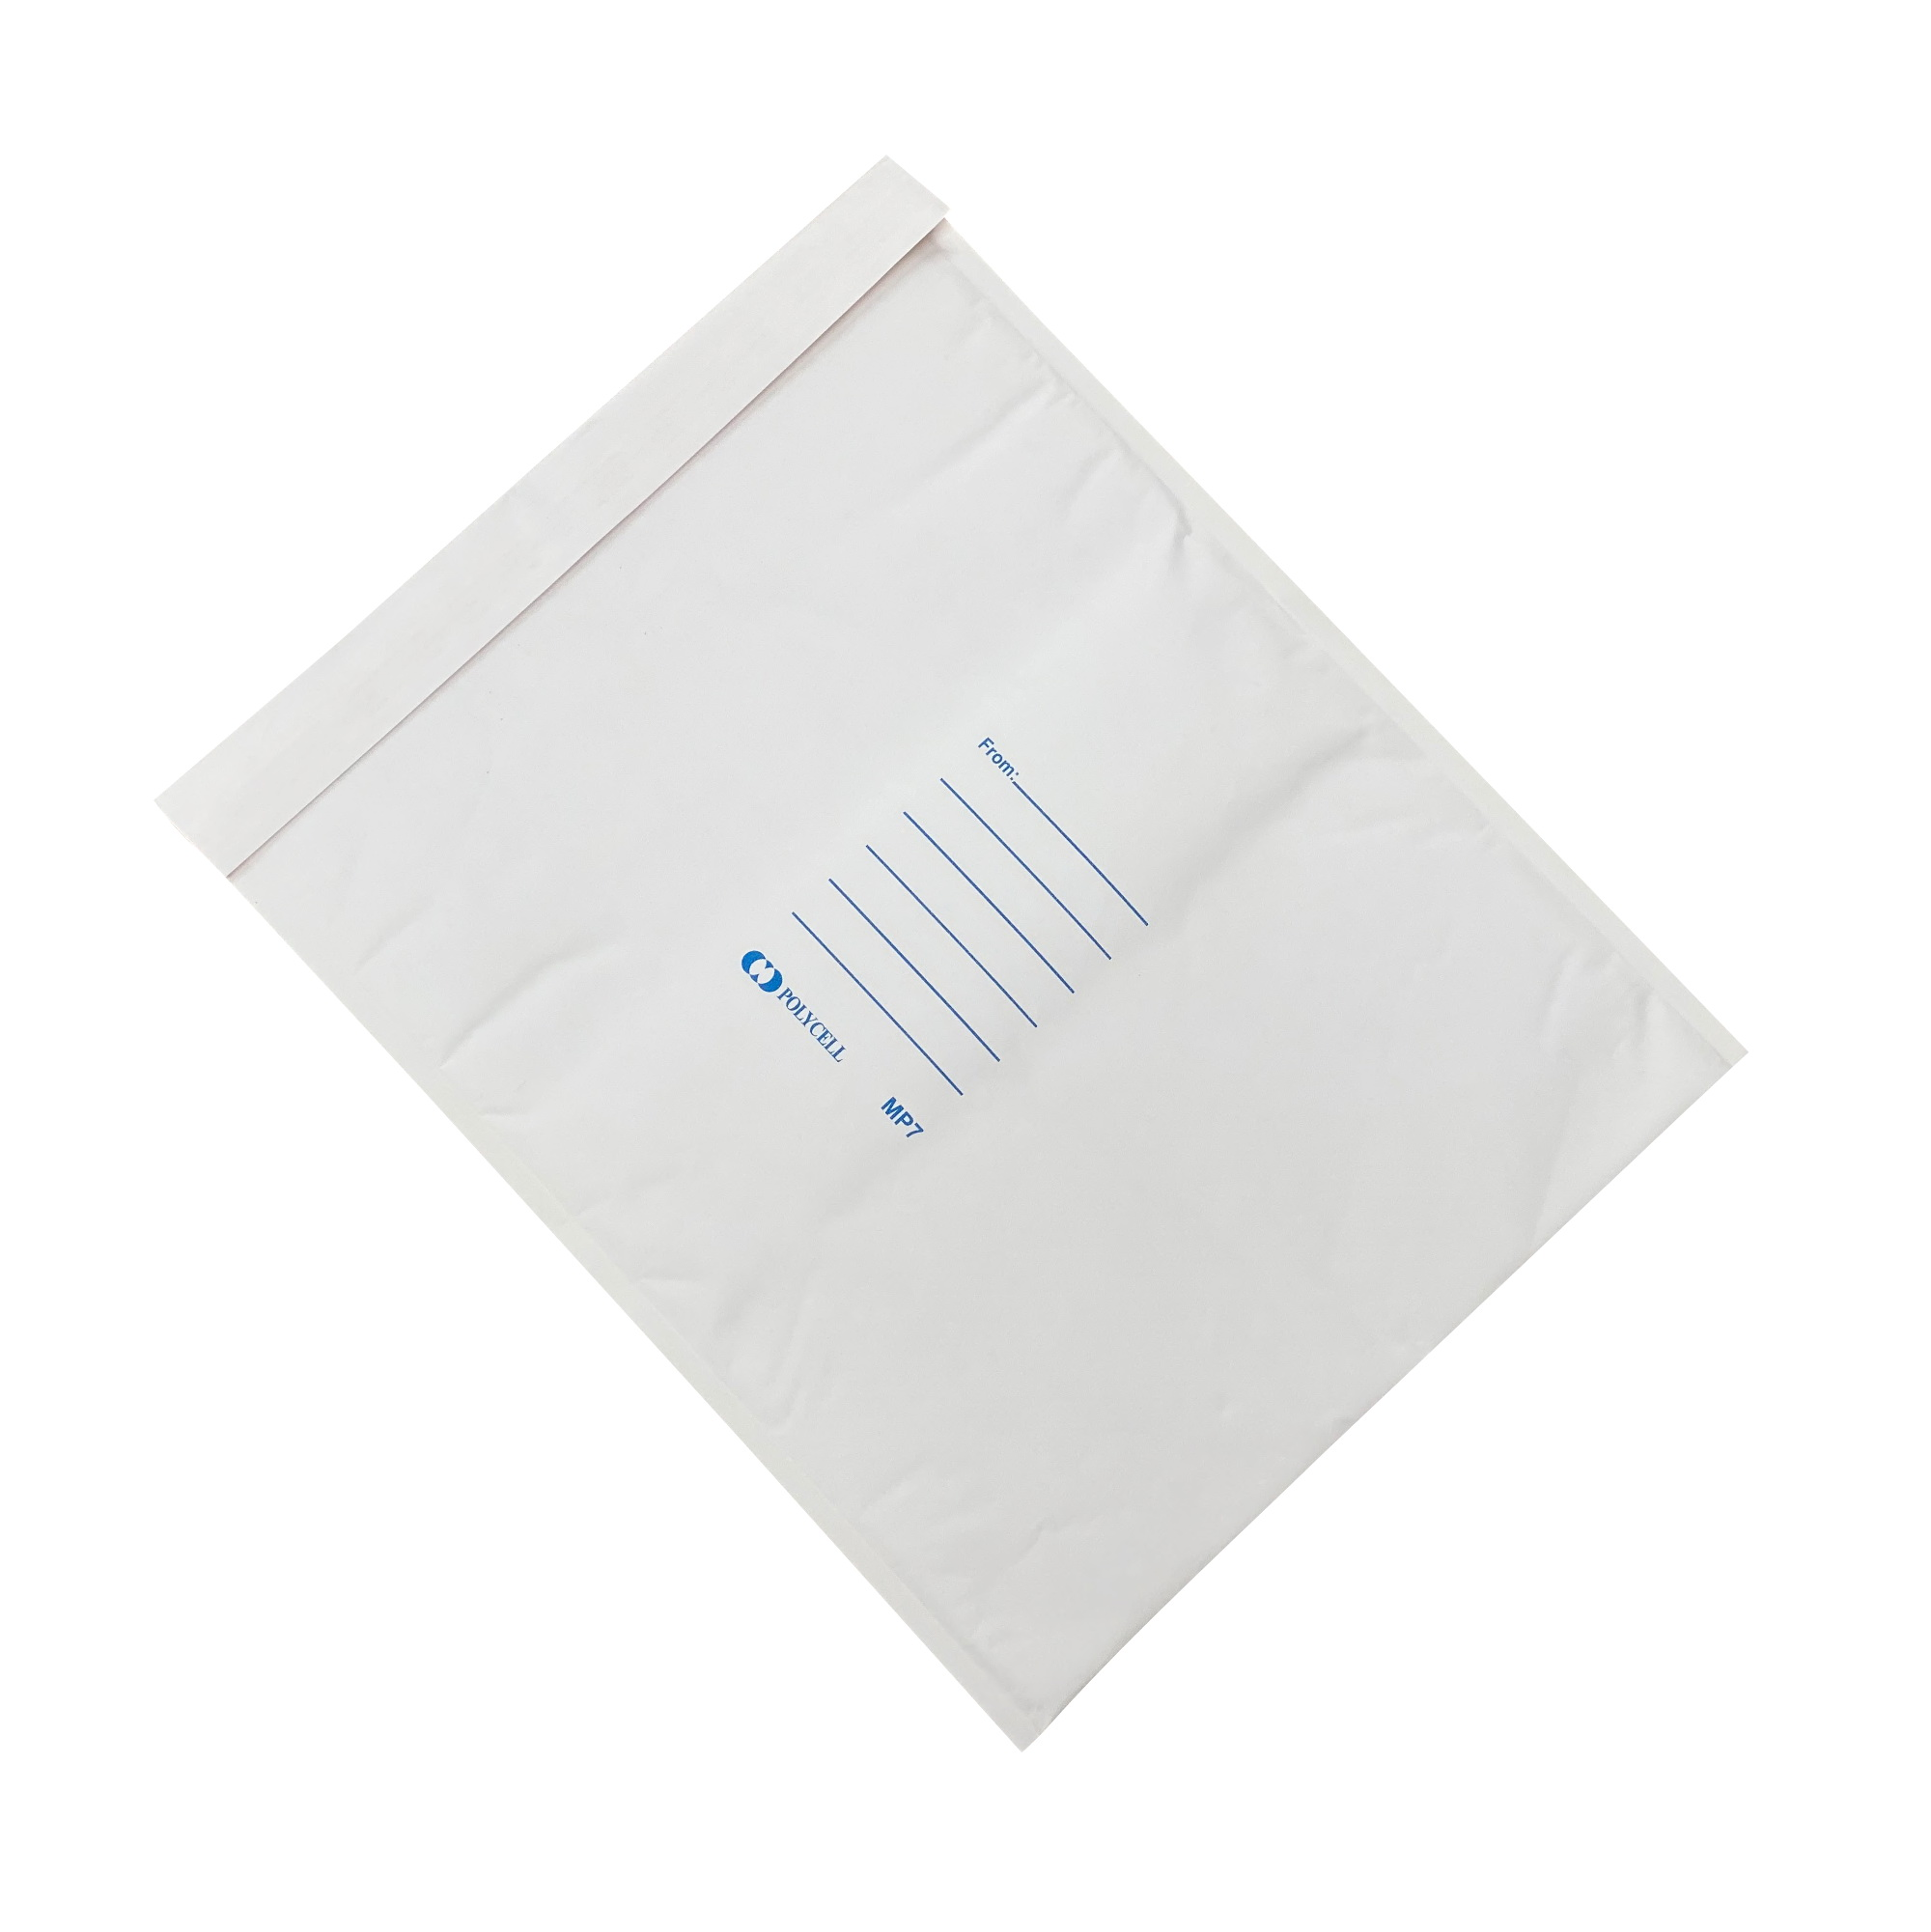 100pcs 360mm x 485mm Bubble Padded Mailer Envelope